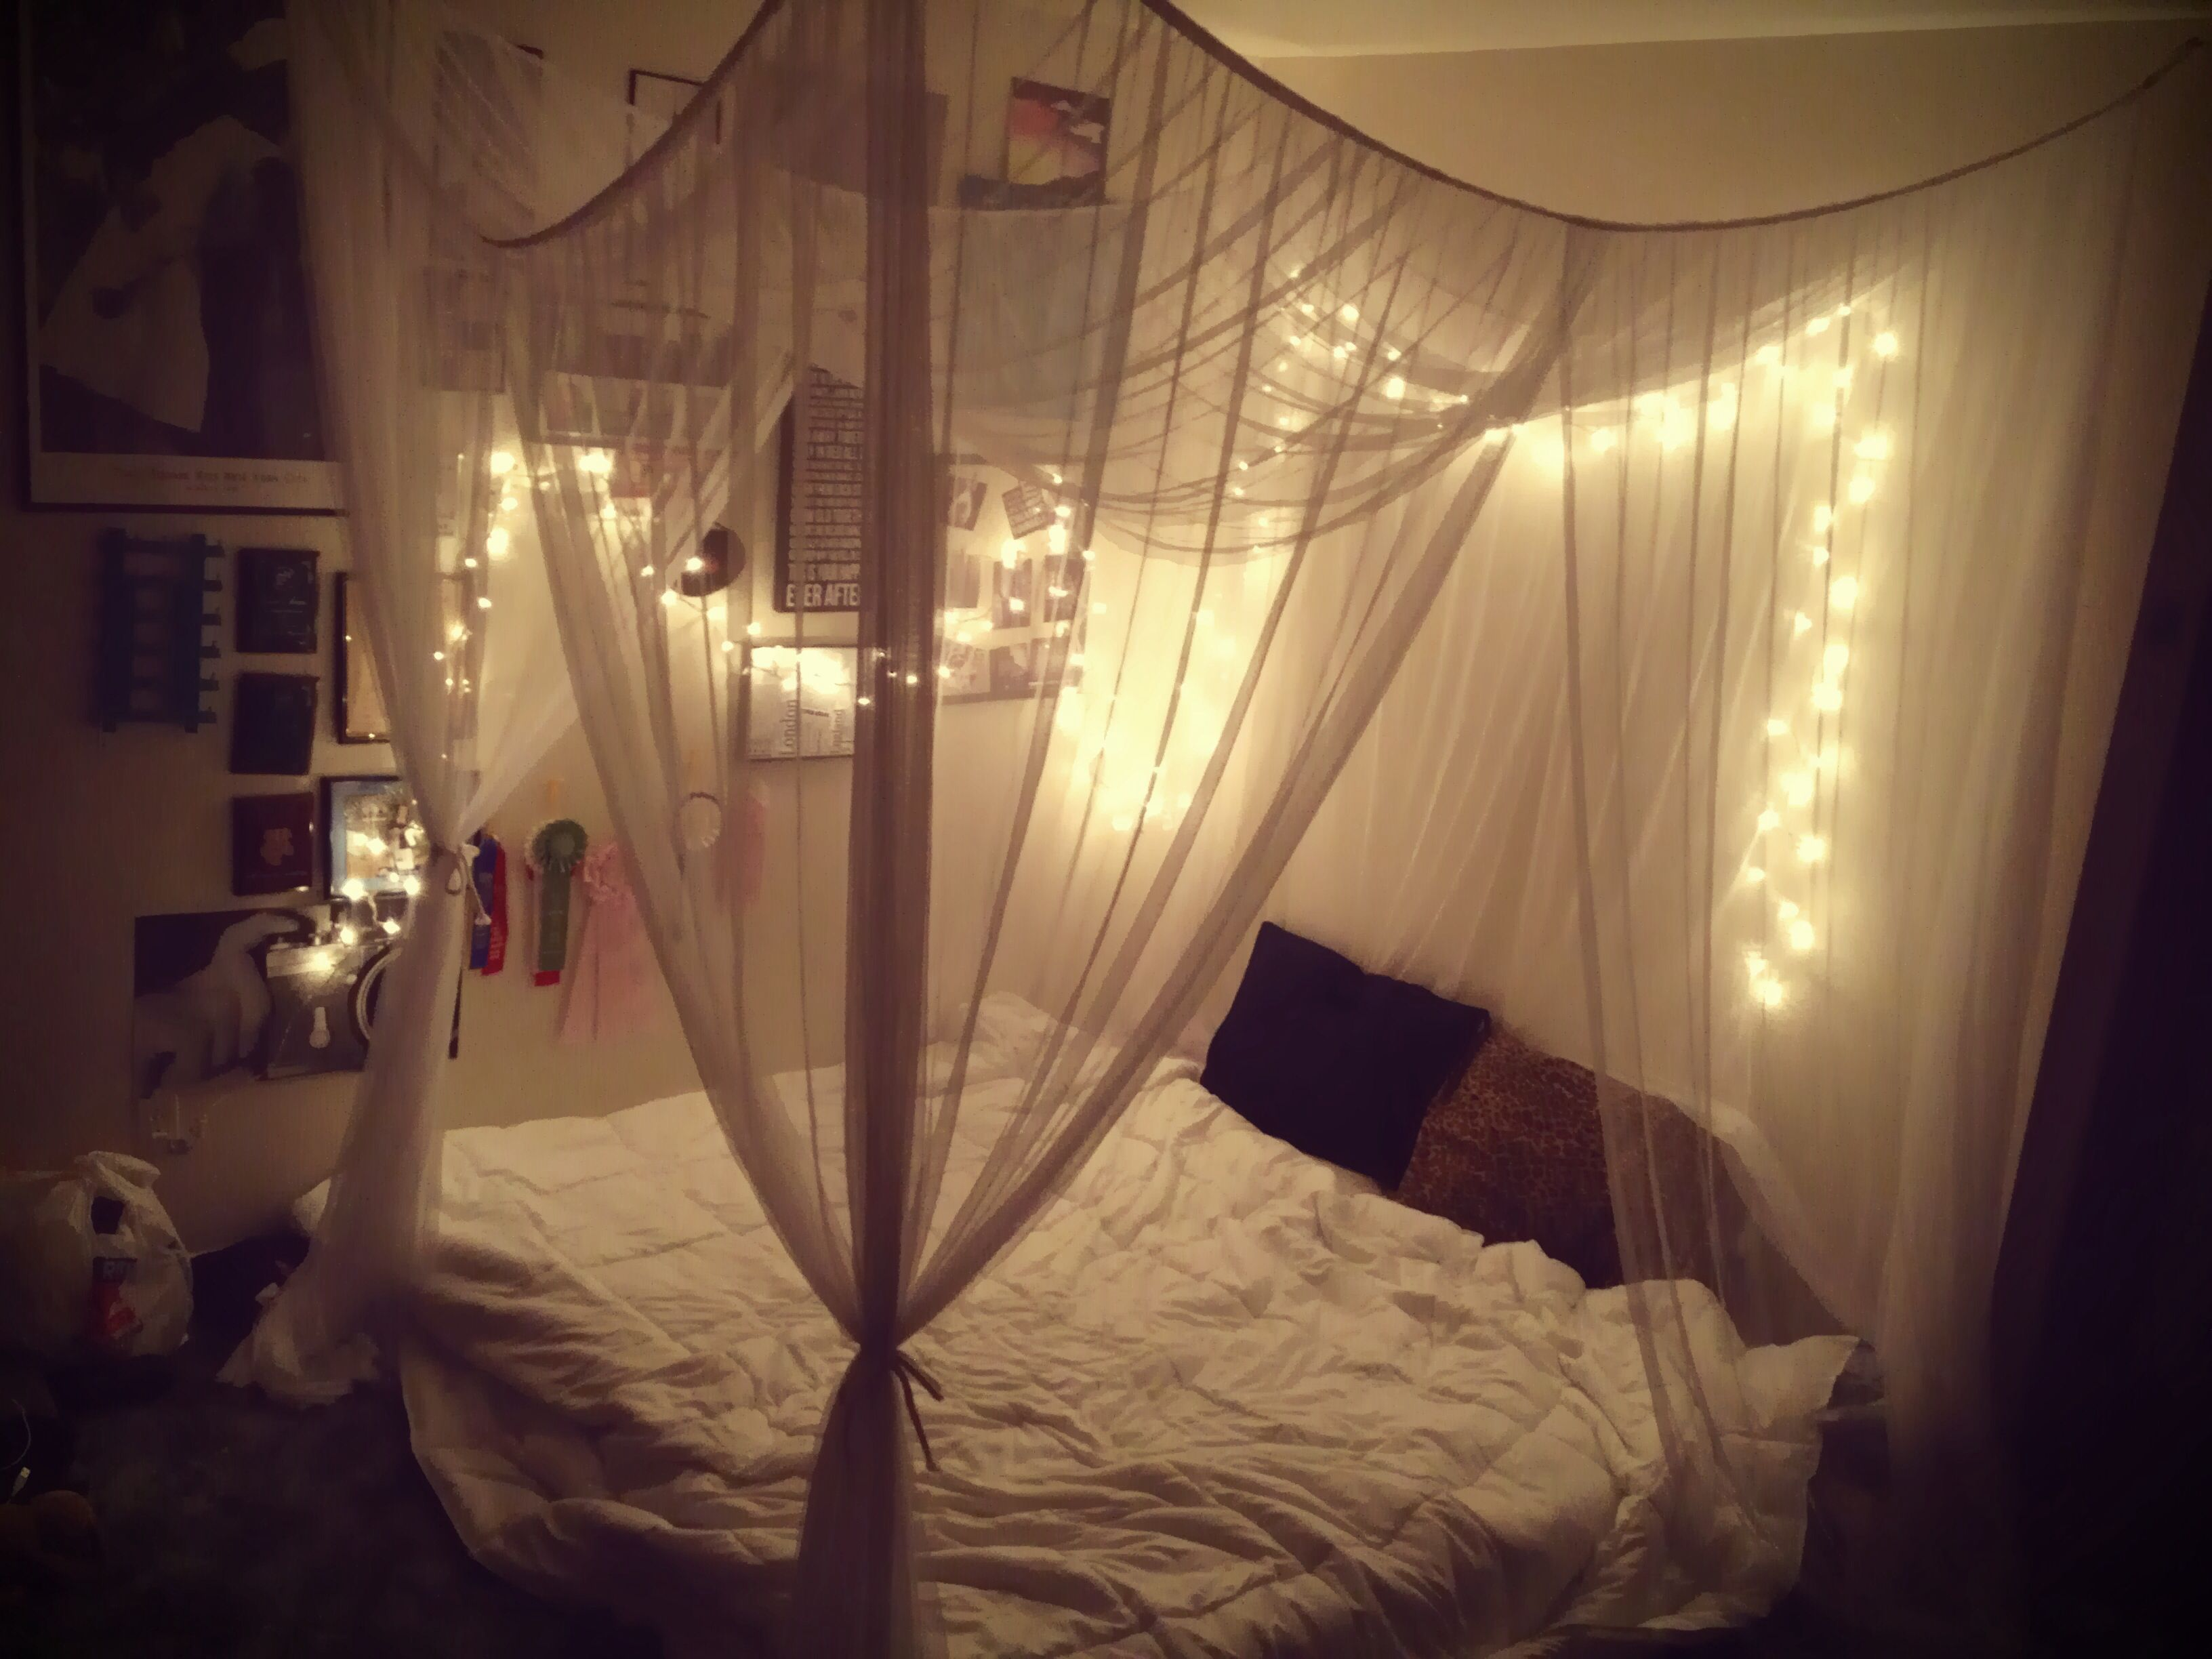 Tumblr bedrooms with lights - Bedroom With Lighted Canopy Tumblr Bedroom Canopy Twinkle Lights